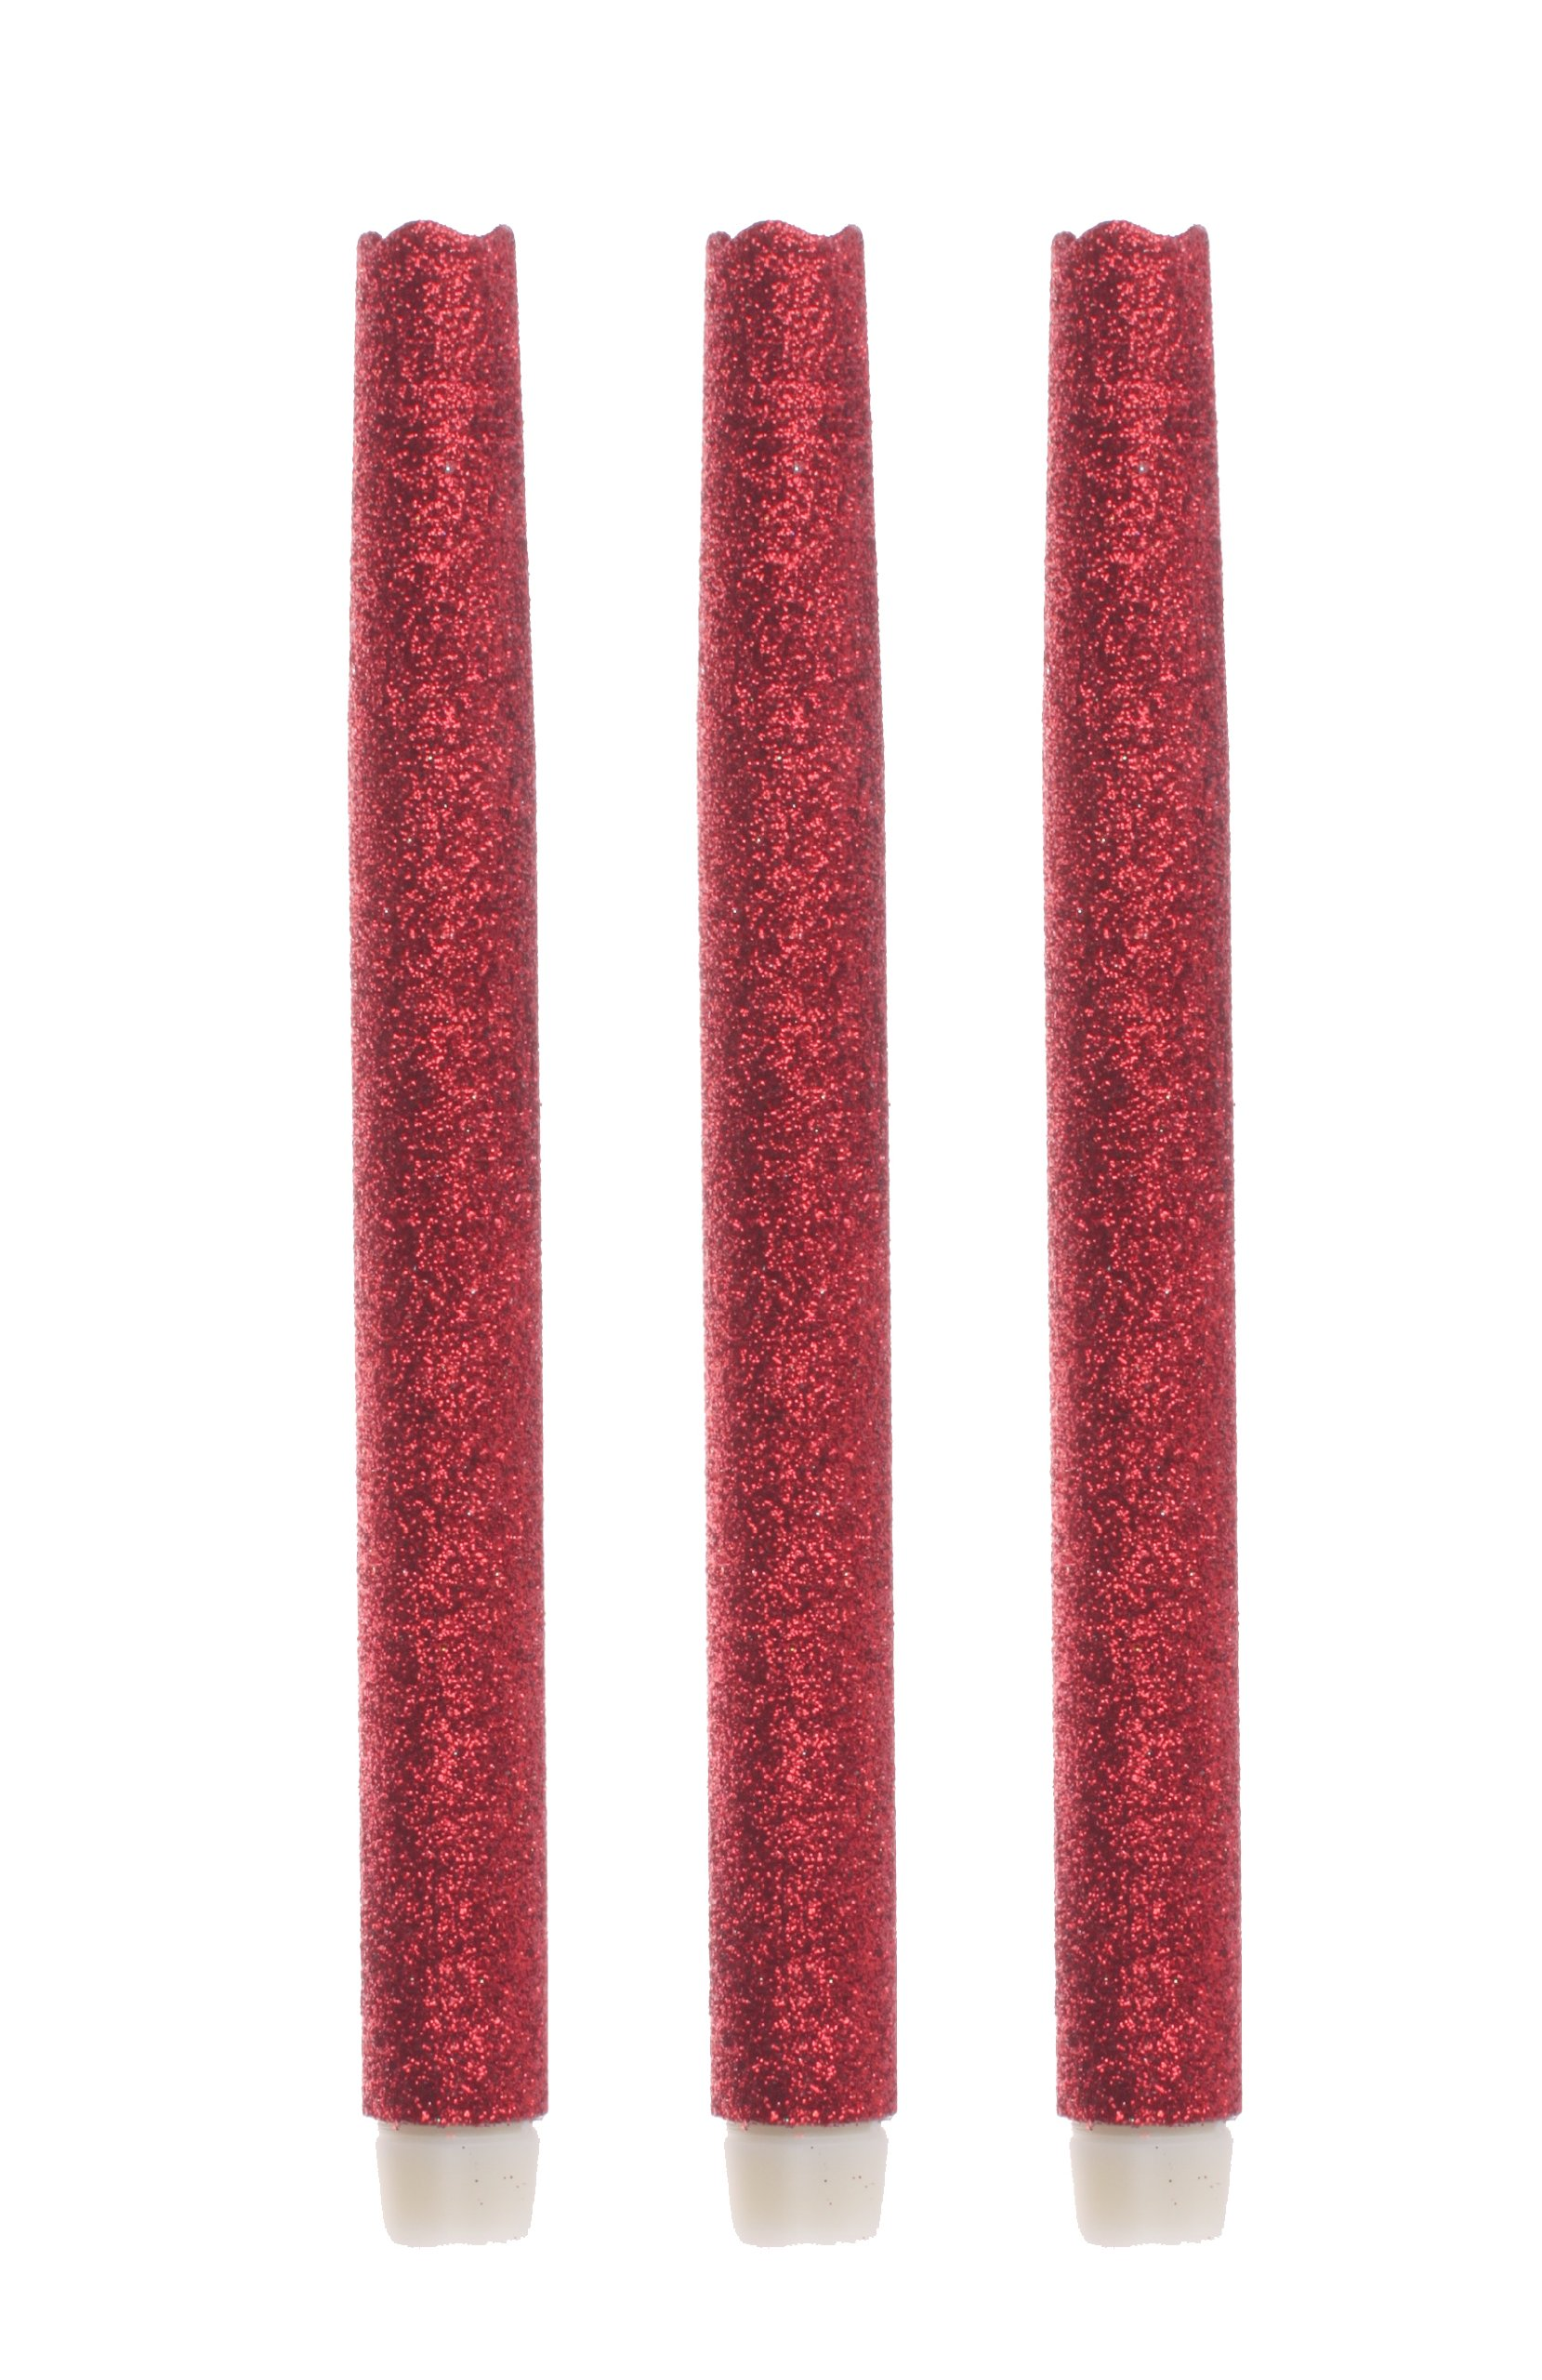 9'' LED Flameless Dripless Led Taper Candles with Timer Function, Battery Operated, Wedding Dinner Candle Set of 3 (Red Glitter)